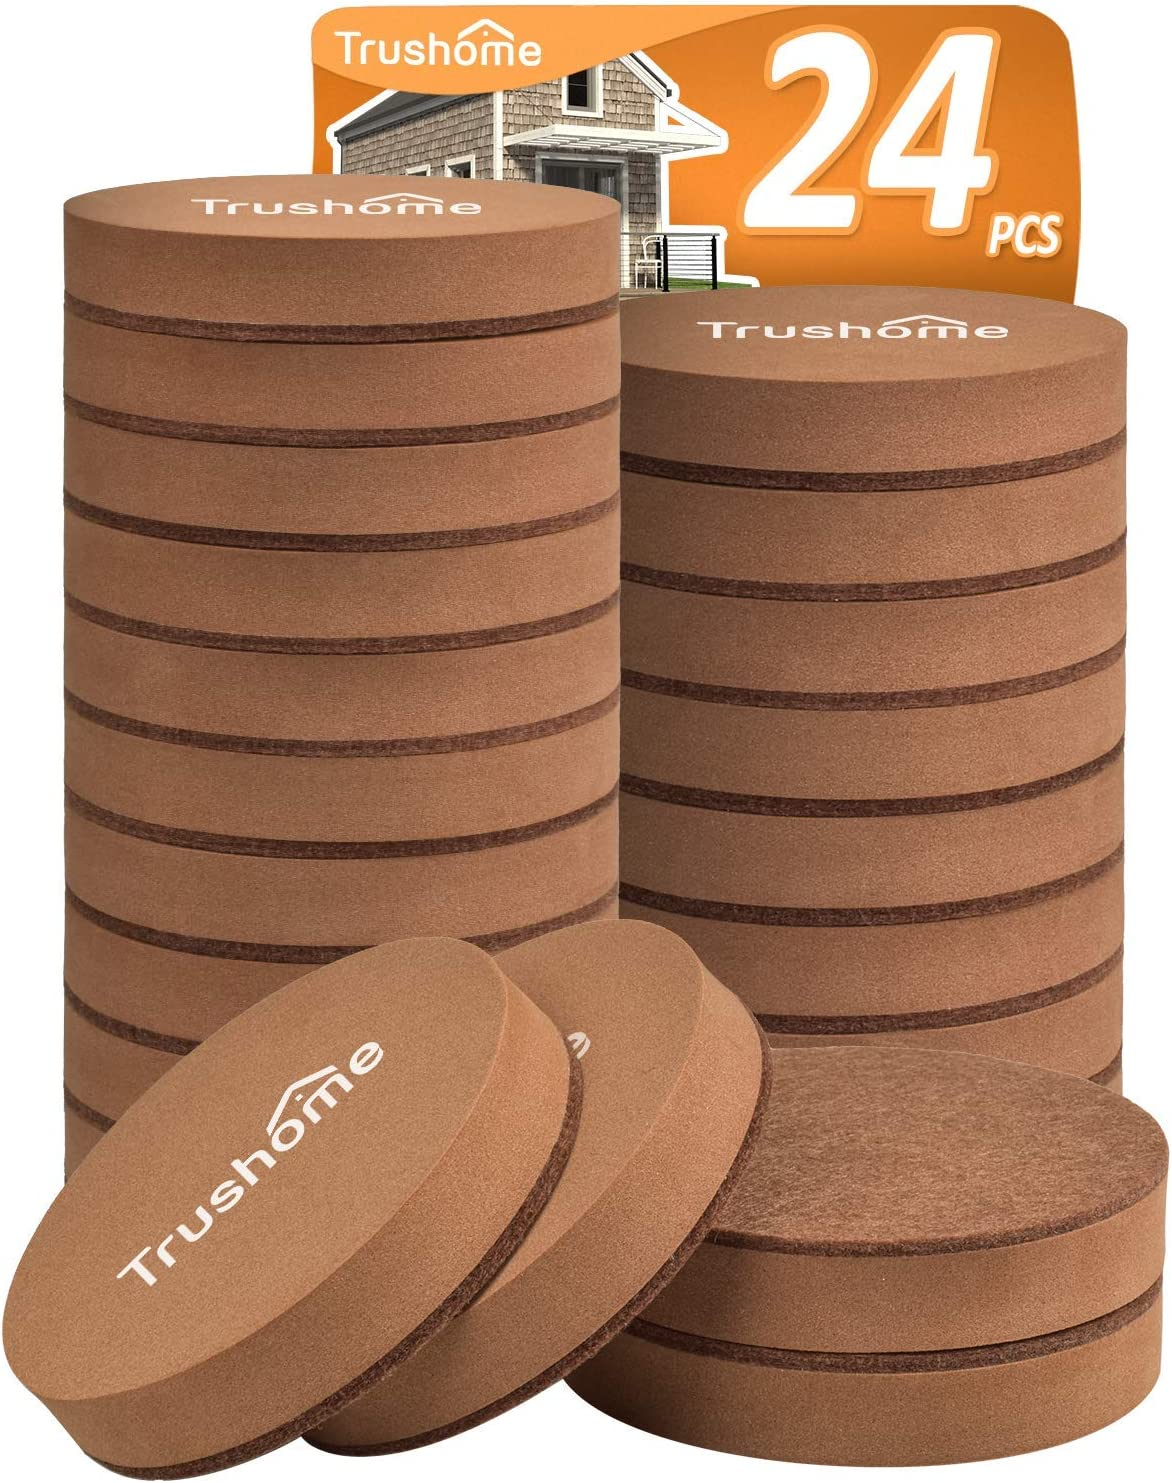 Furniture Sliders for Hardwood Floors, 24 PCS Furniture Sliders – 2 1/2 inch Heavy Duty Felt Furniture Movers for Hard Surfaces, Reusable Moving Pads Easy to Move Your Furniture